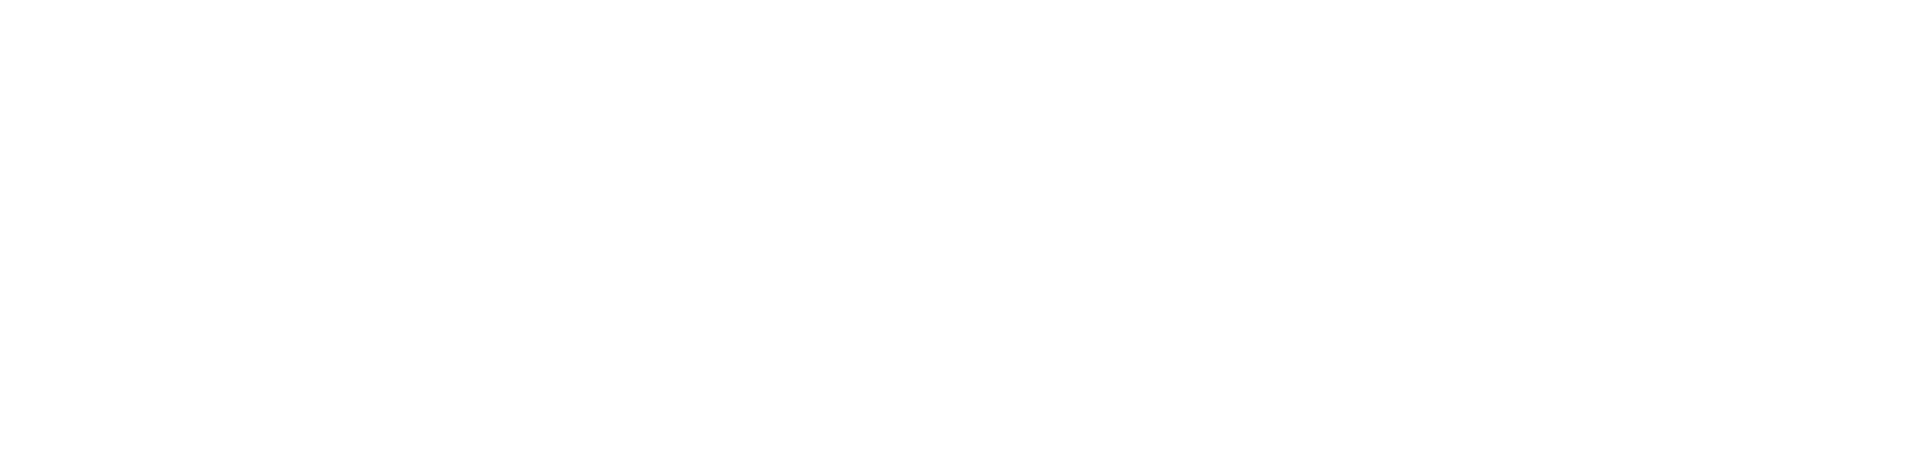 AECF Youth Committee 2018